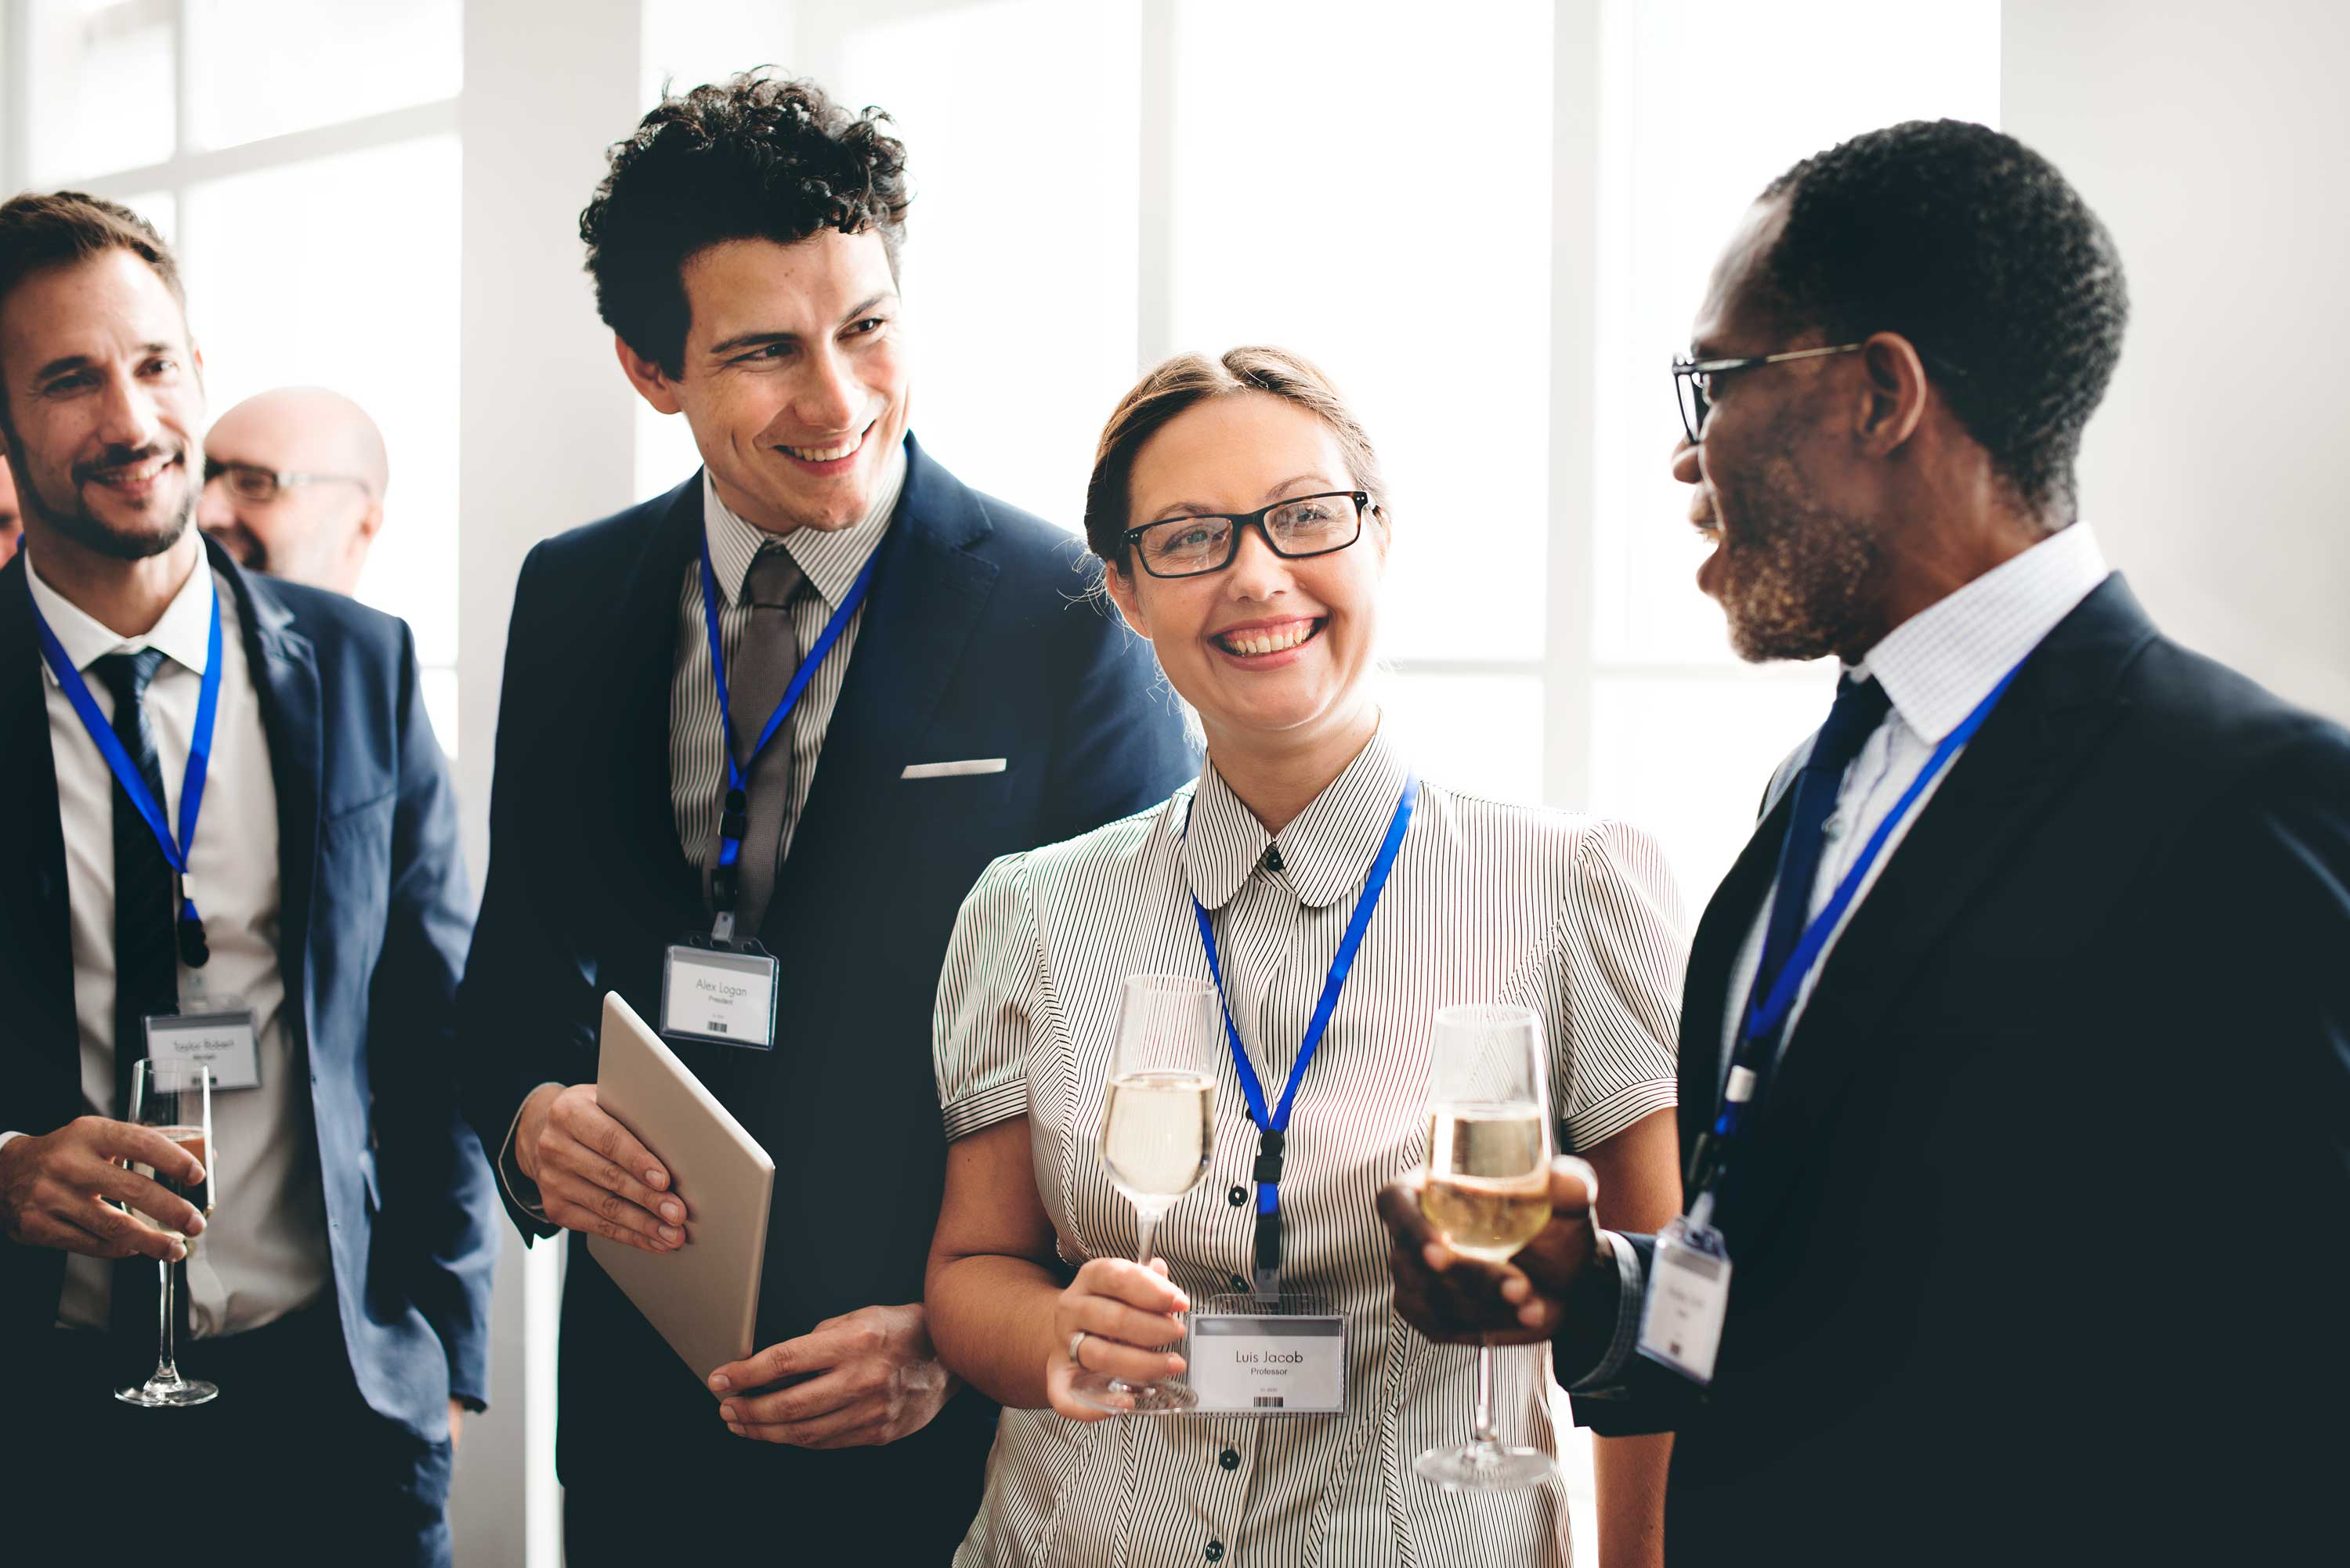 4 ways networking can save your business during Covid-19